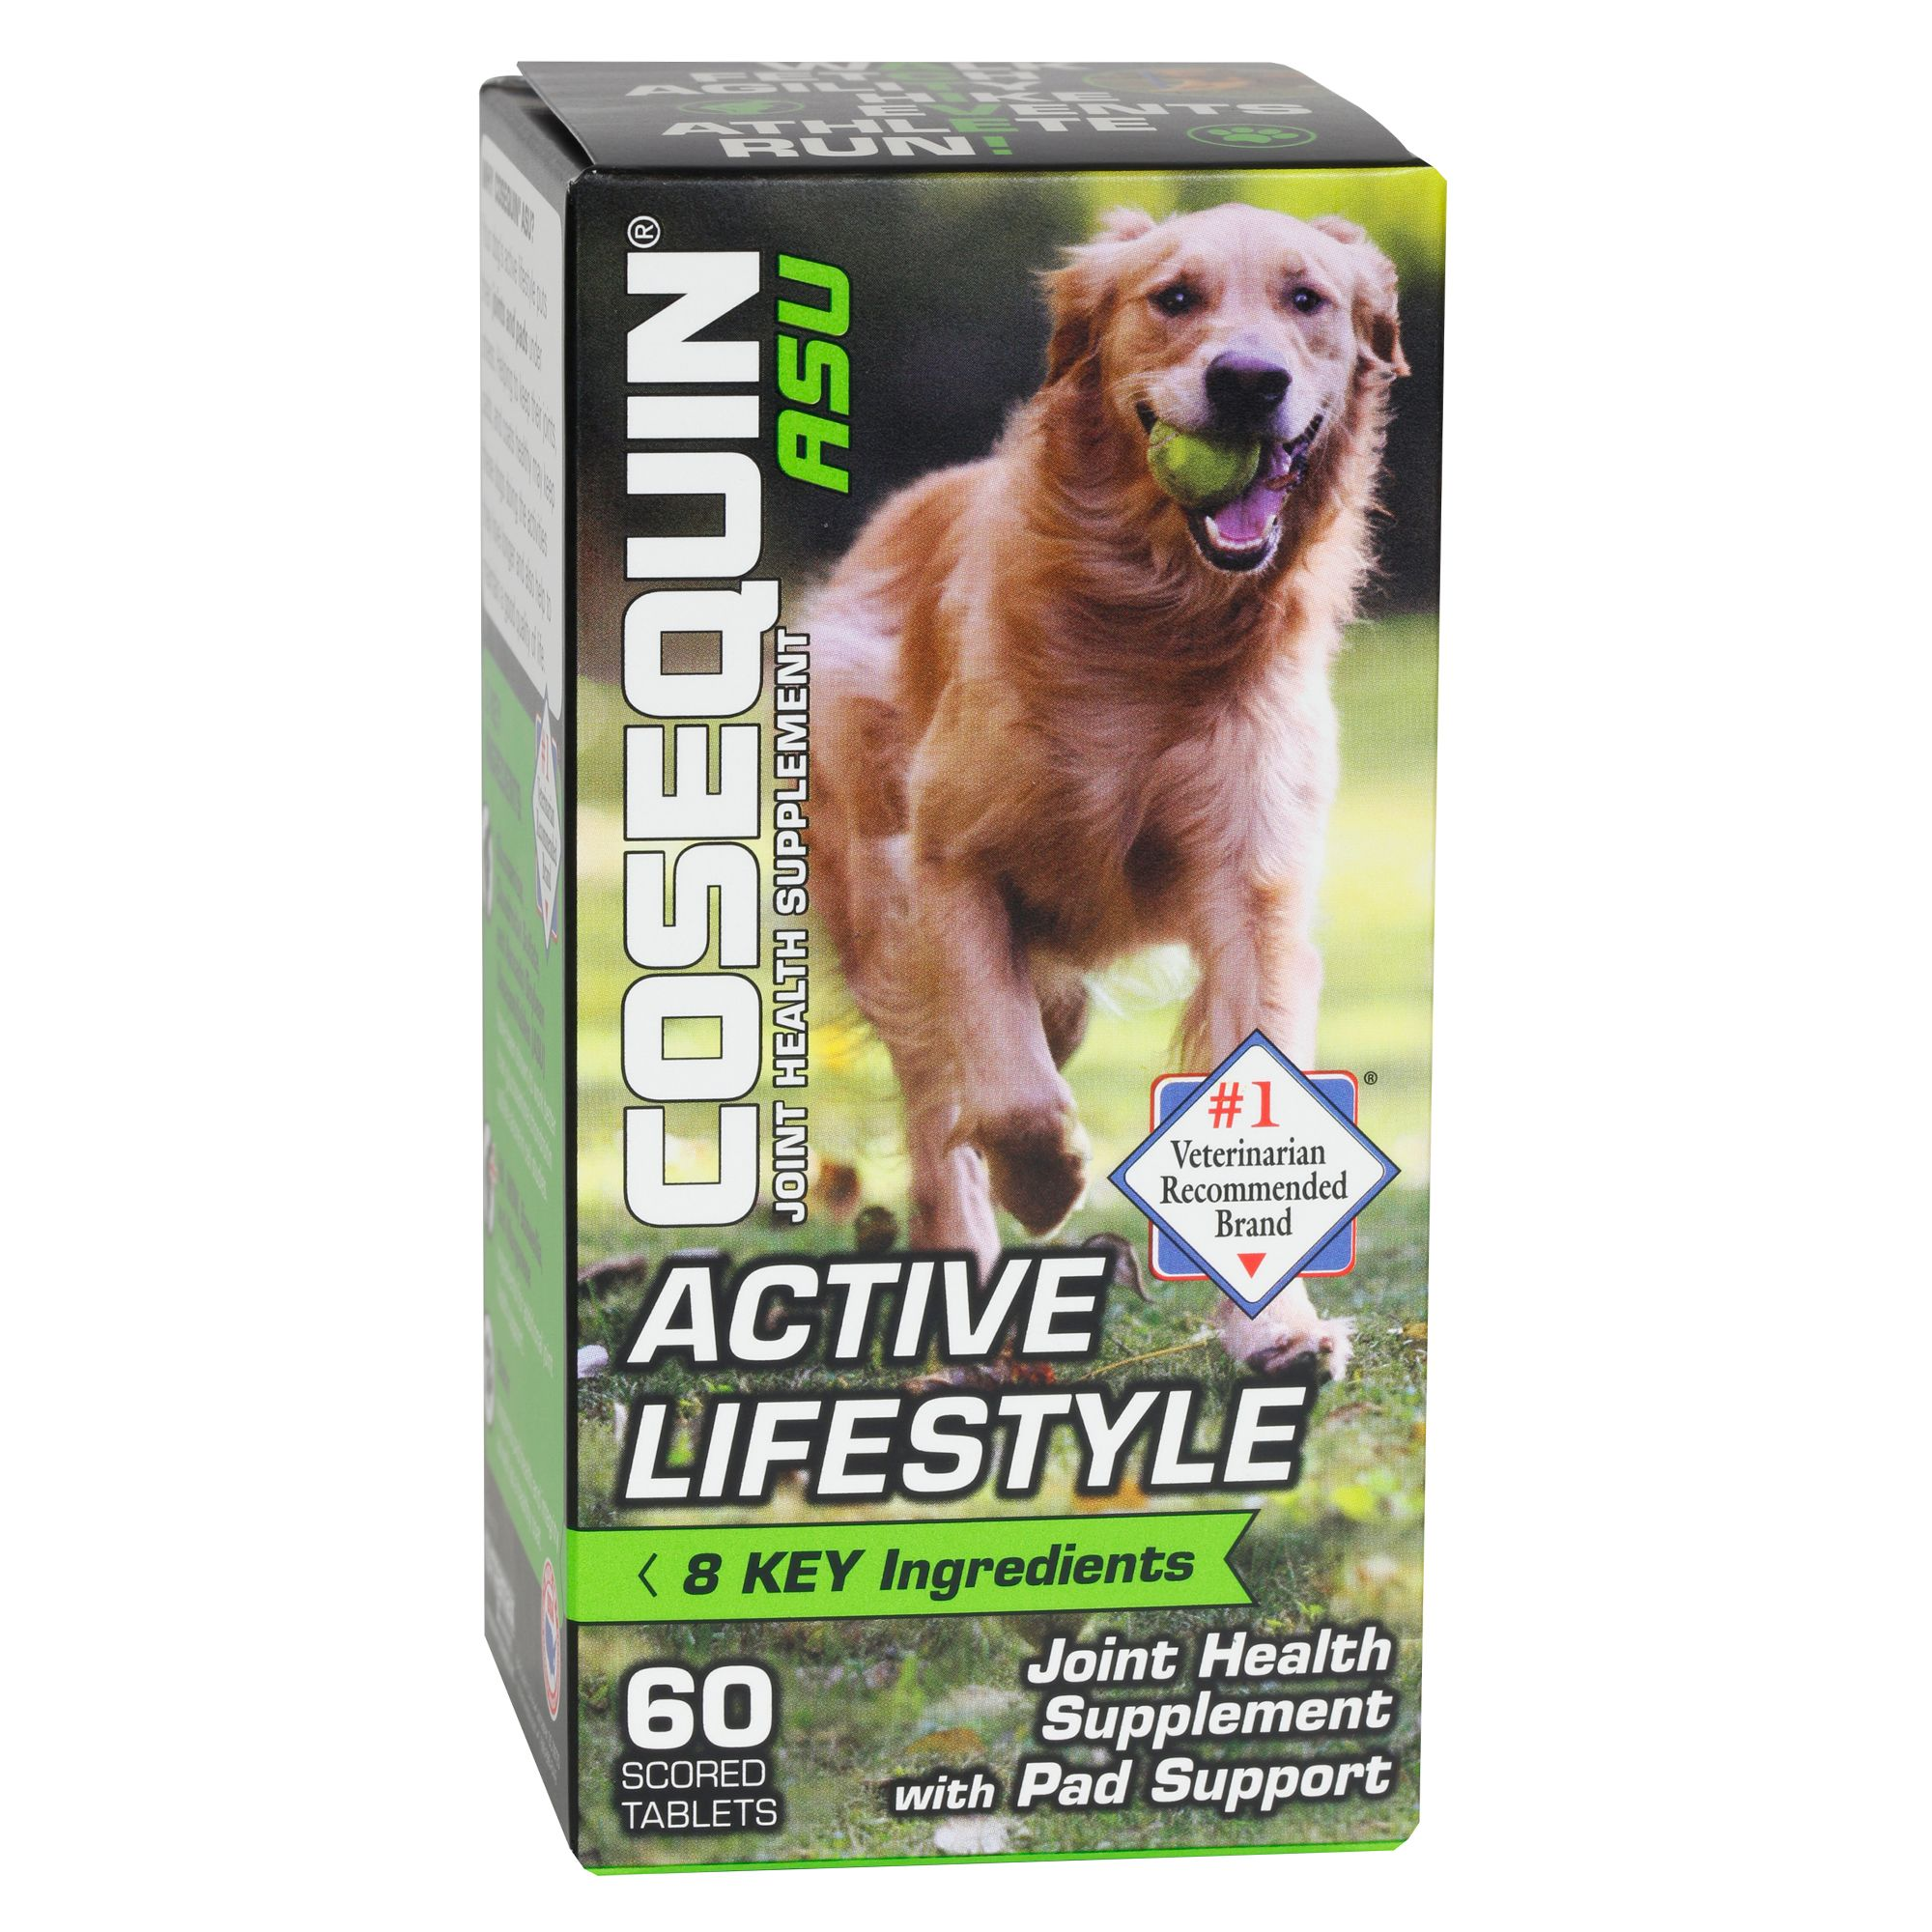 Cosequin Asu Active Lifestyle Joint Health Dog Supplement Size 30 Count Nutramax Laboratories